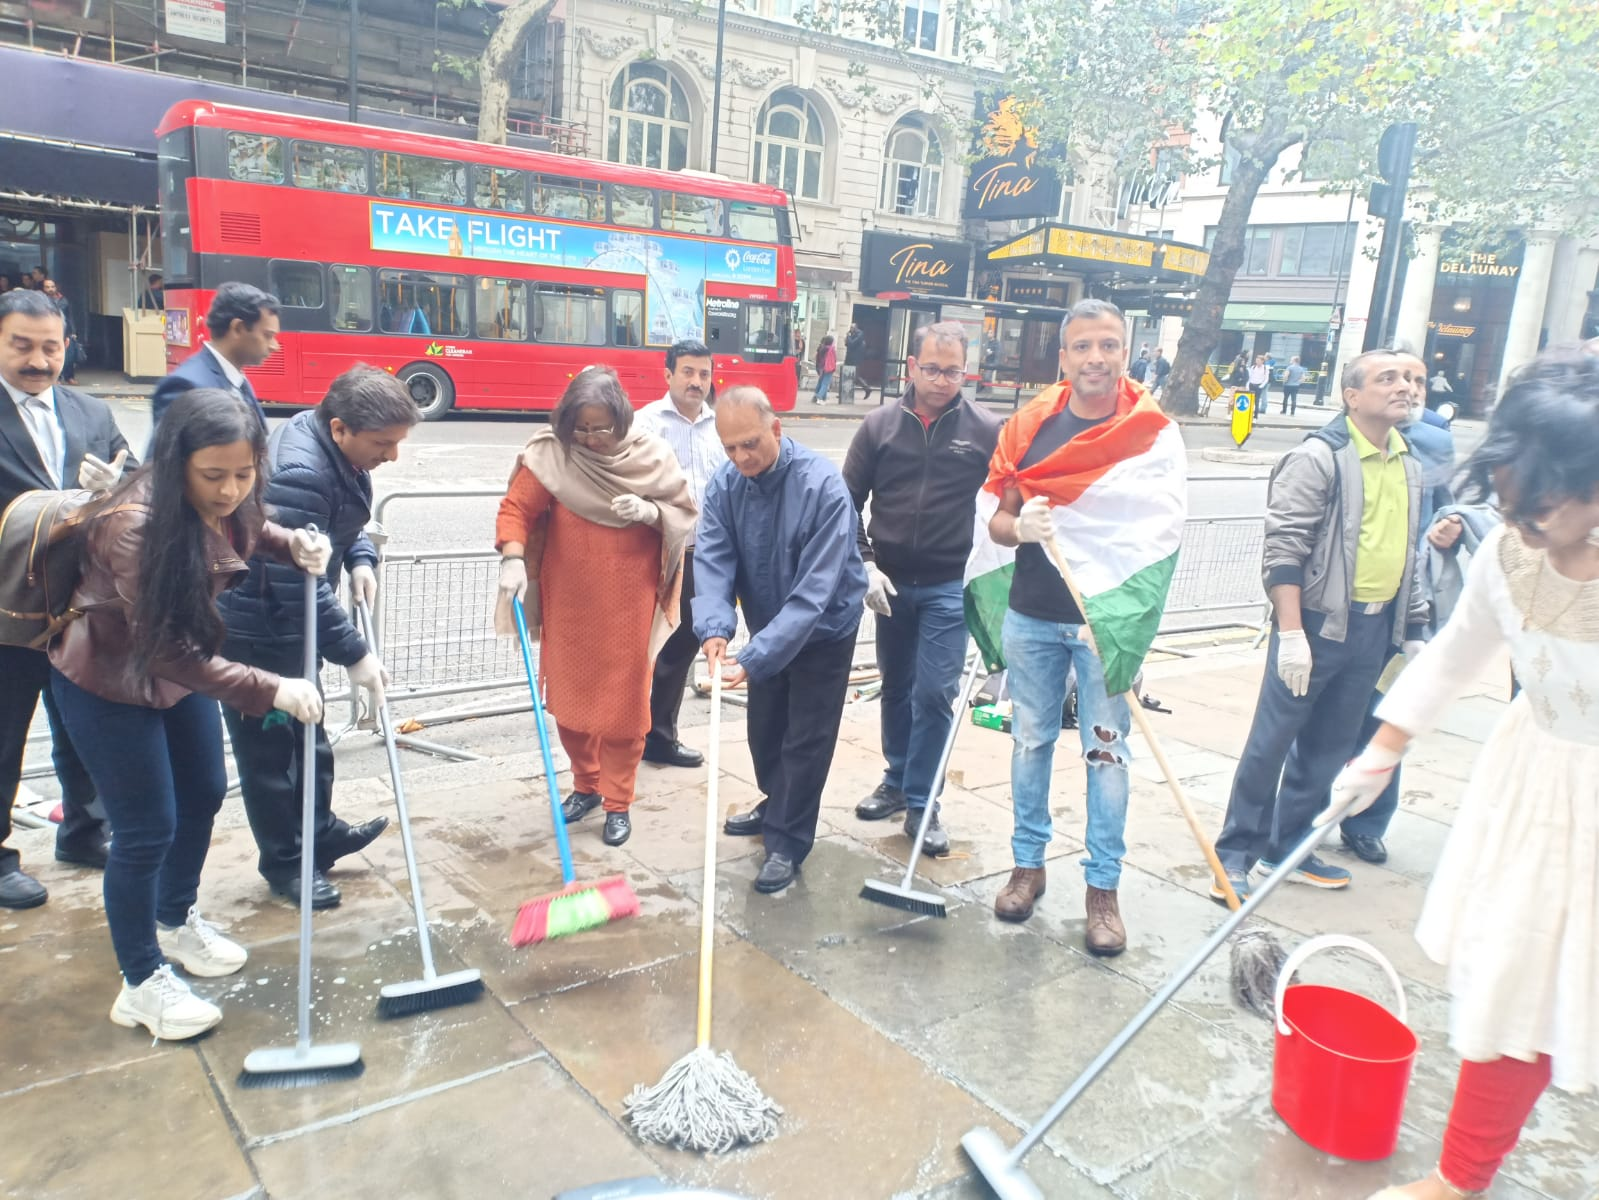 High Commissioner Ruchi Ghanshyam along with Deputy High Commissioner Charan Jeet Singh and a good number of people of Indian origin cleaned up the mess left by protestors outside the Indian consulate.